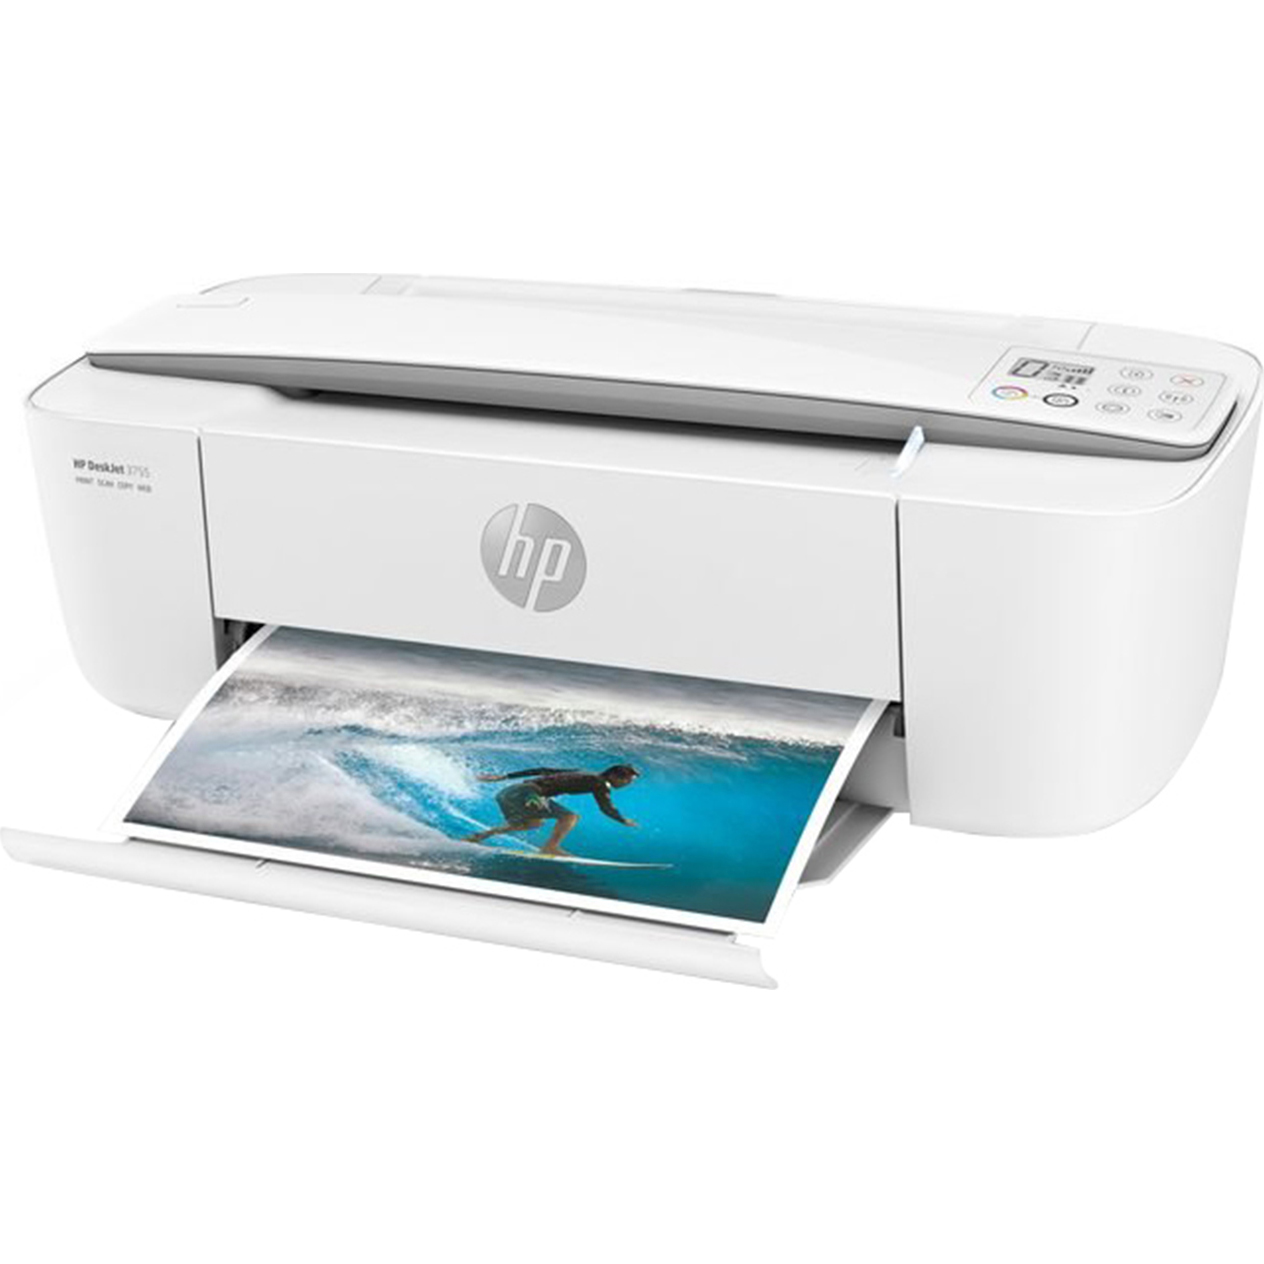 Refurbished HP 3755 All-in-One Color Ink Jet Printer, White